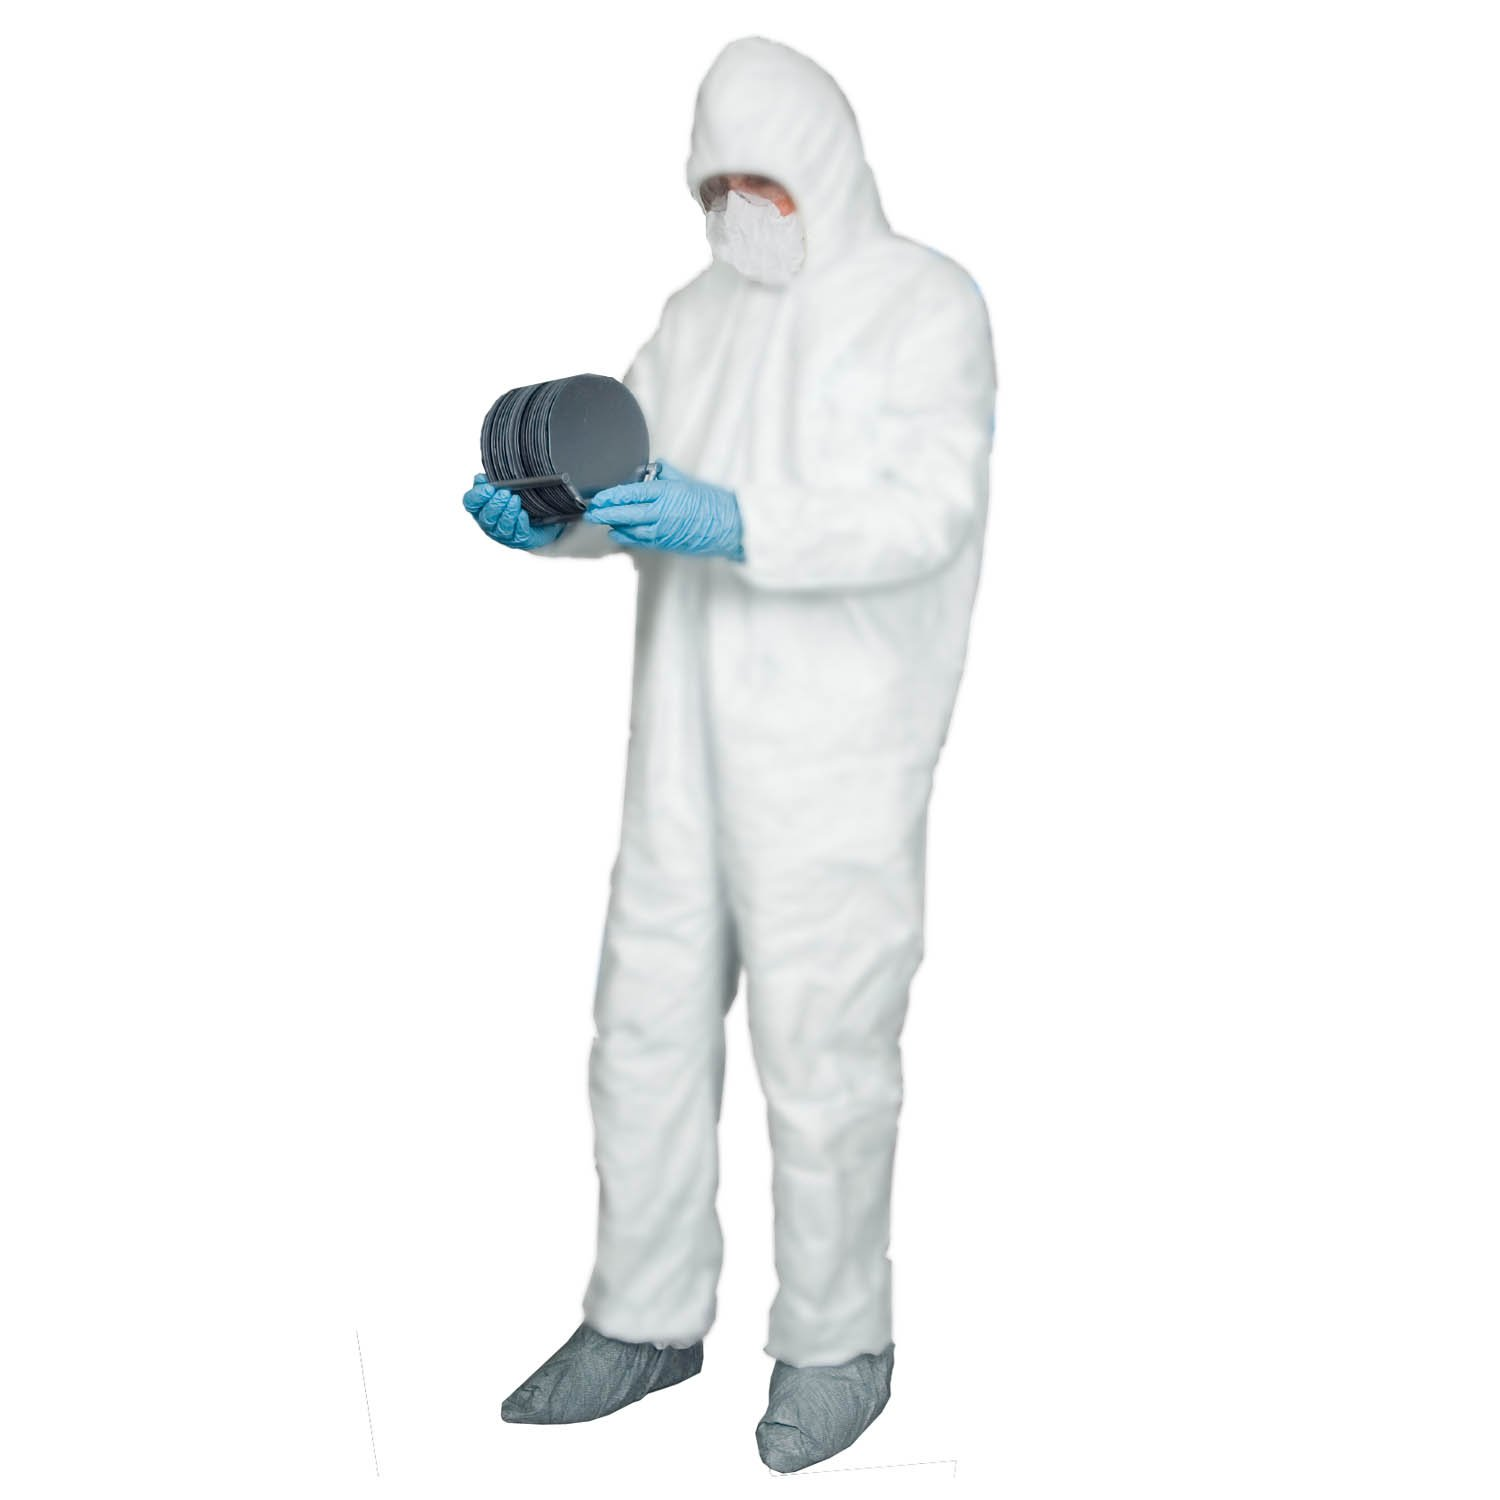 Enviroguard Body Filter 95 Plus Coverall with Hood, Disposable, White, 2X-Large (Case of 25)